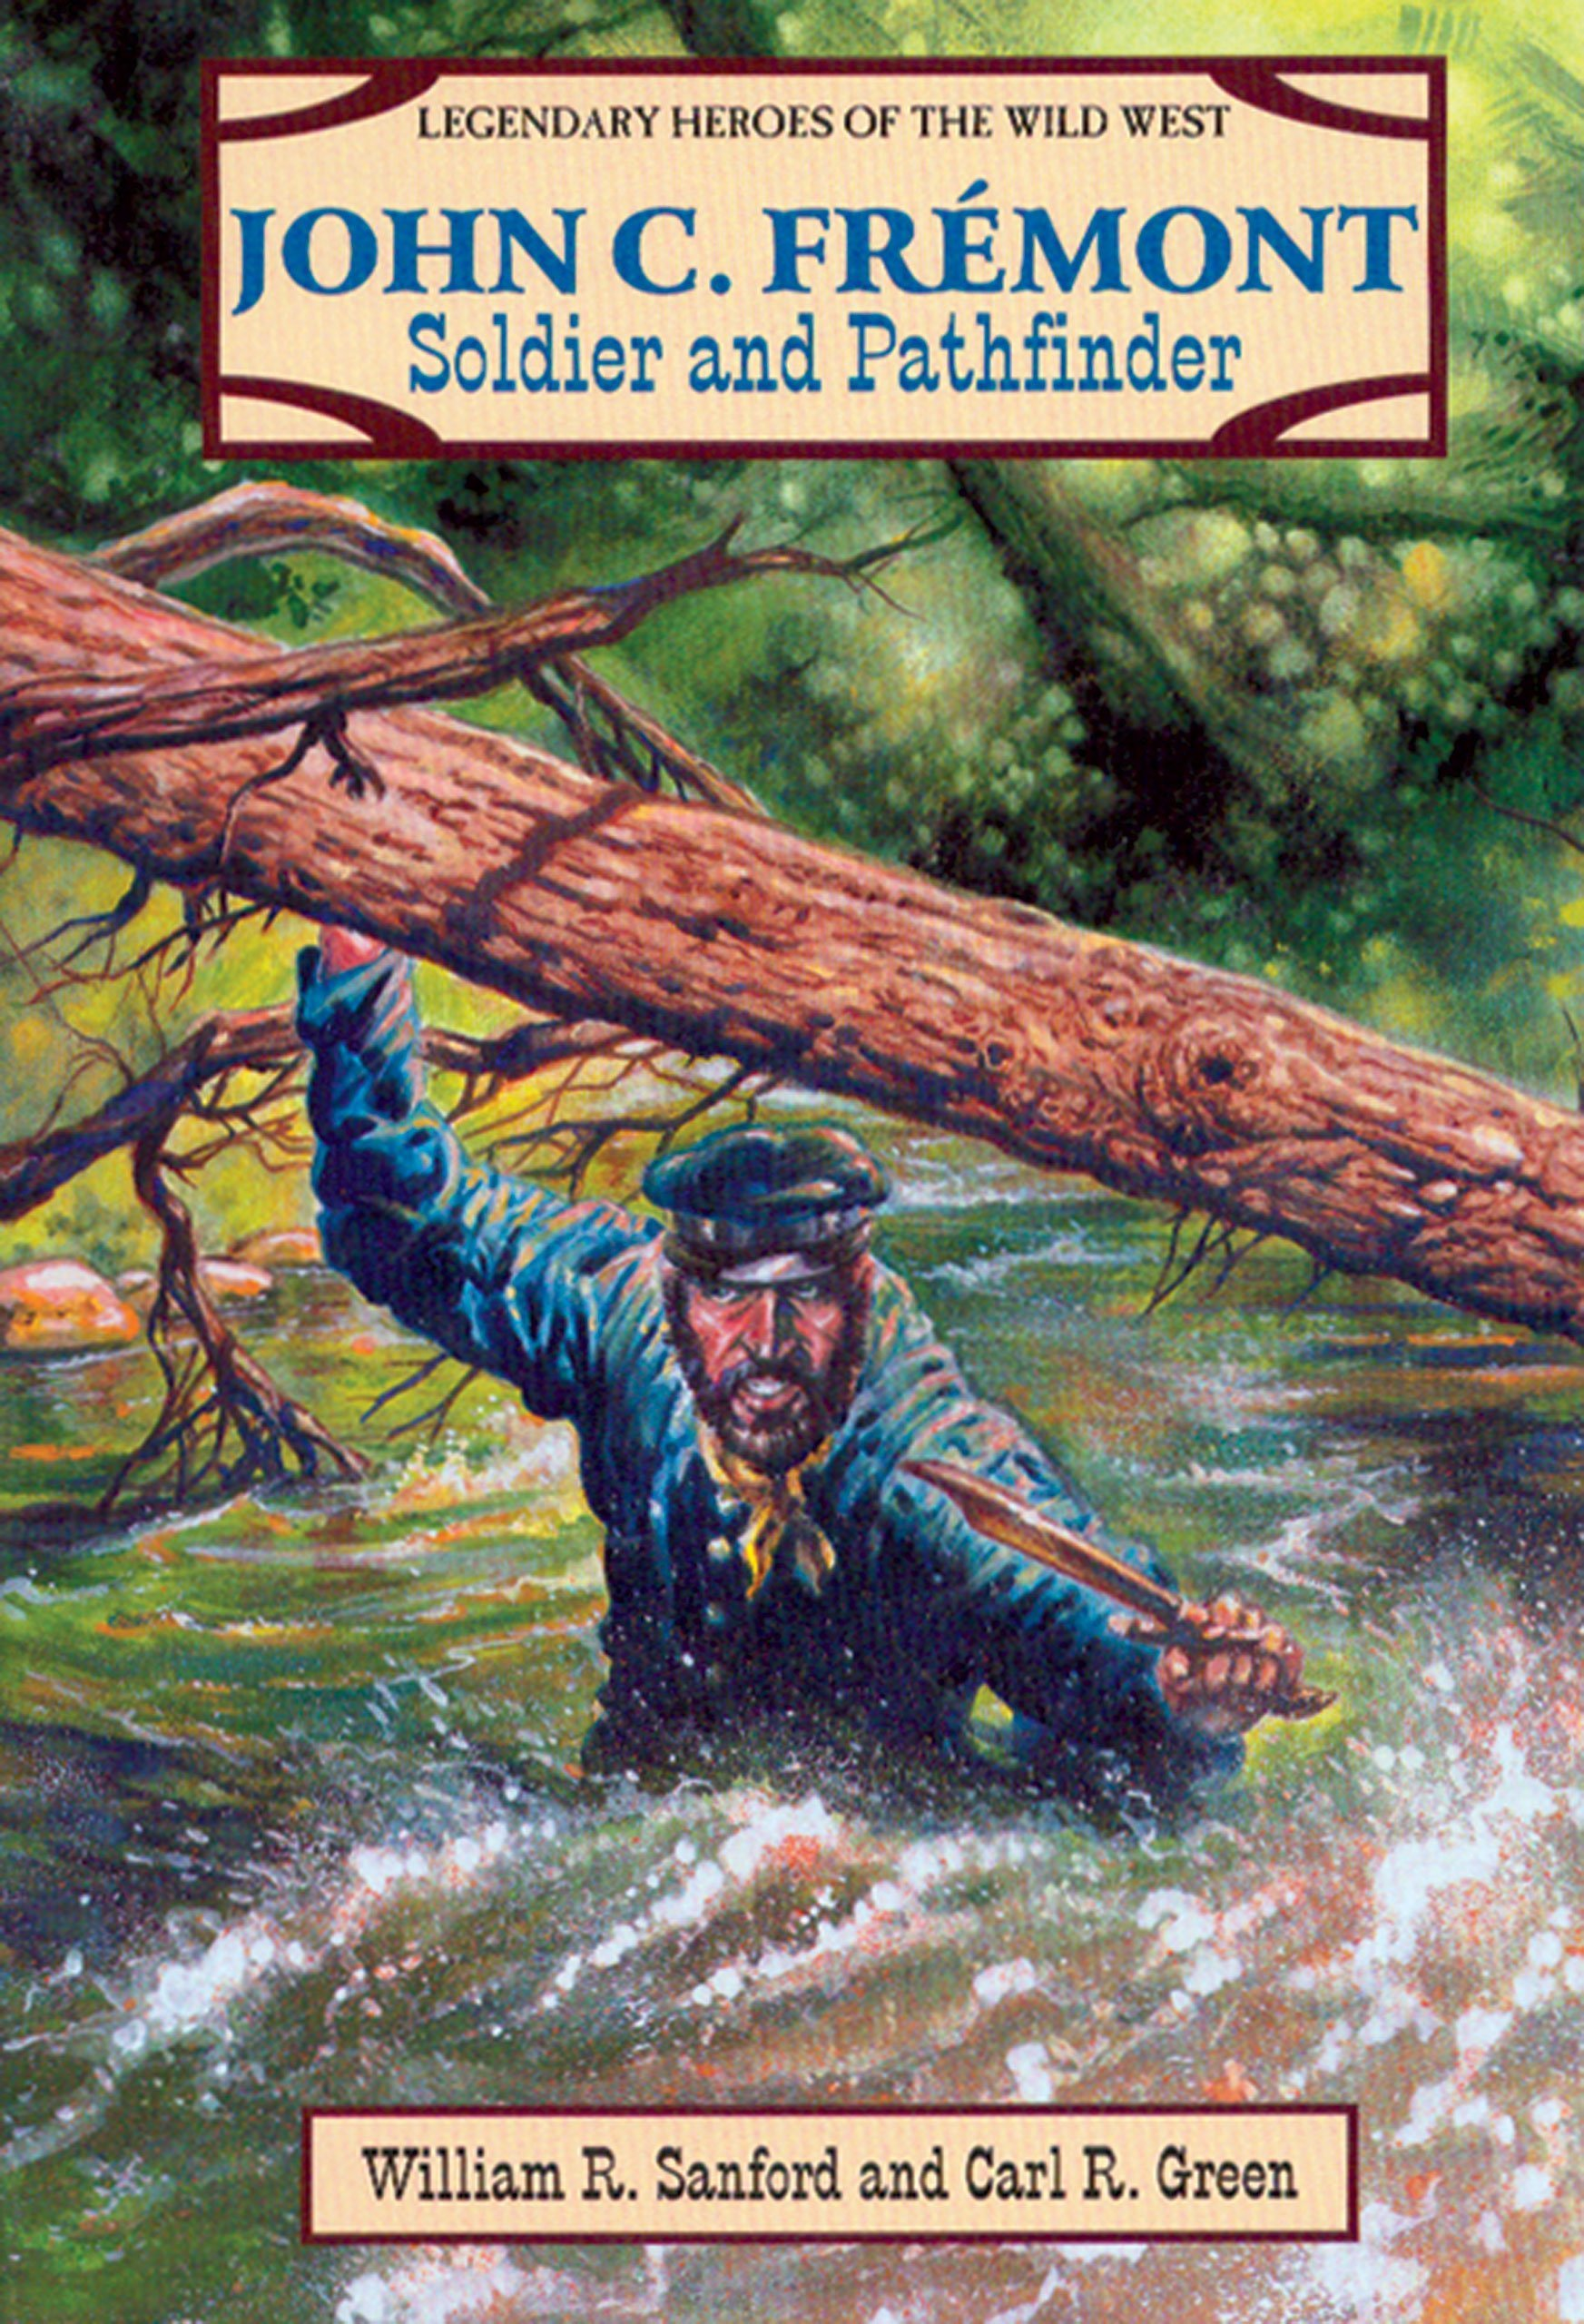 John C. Fremont: Soldier and Pathfinder (Legendary Heroes of the Wild West)